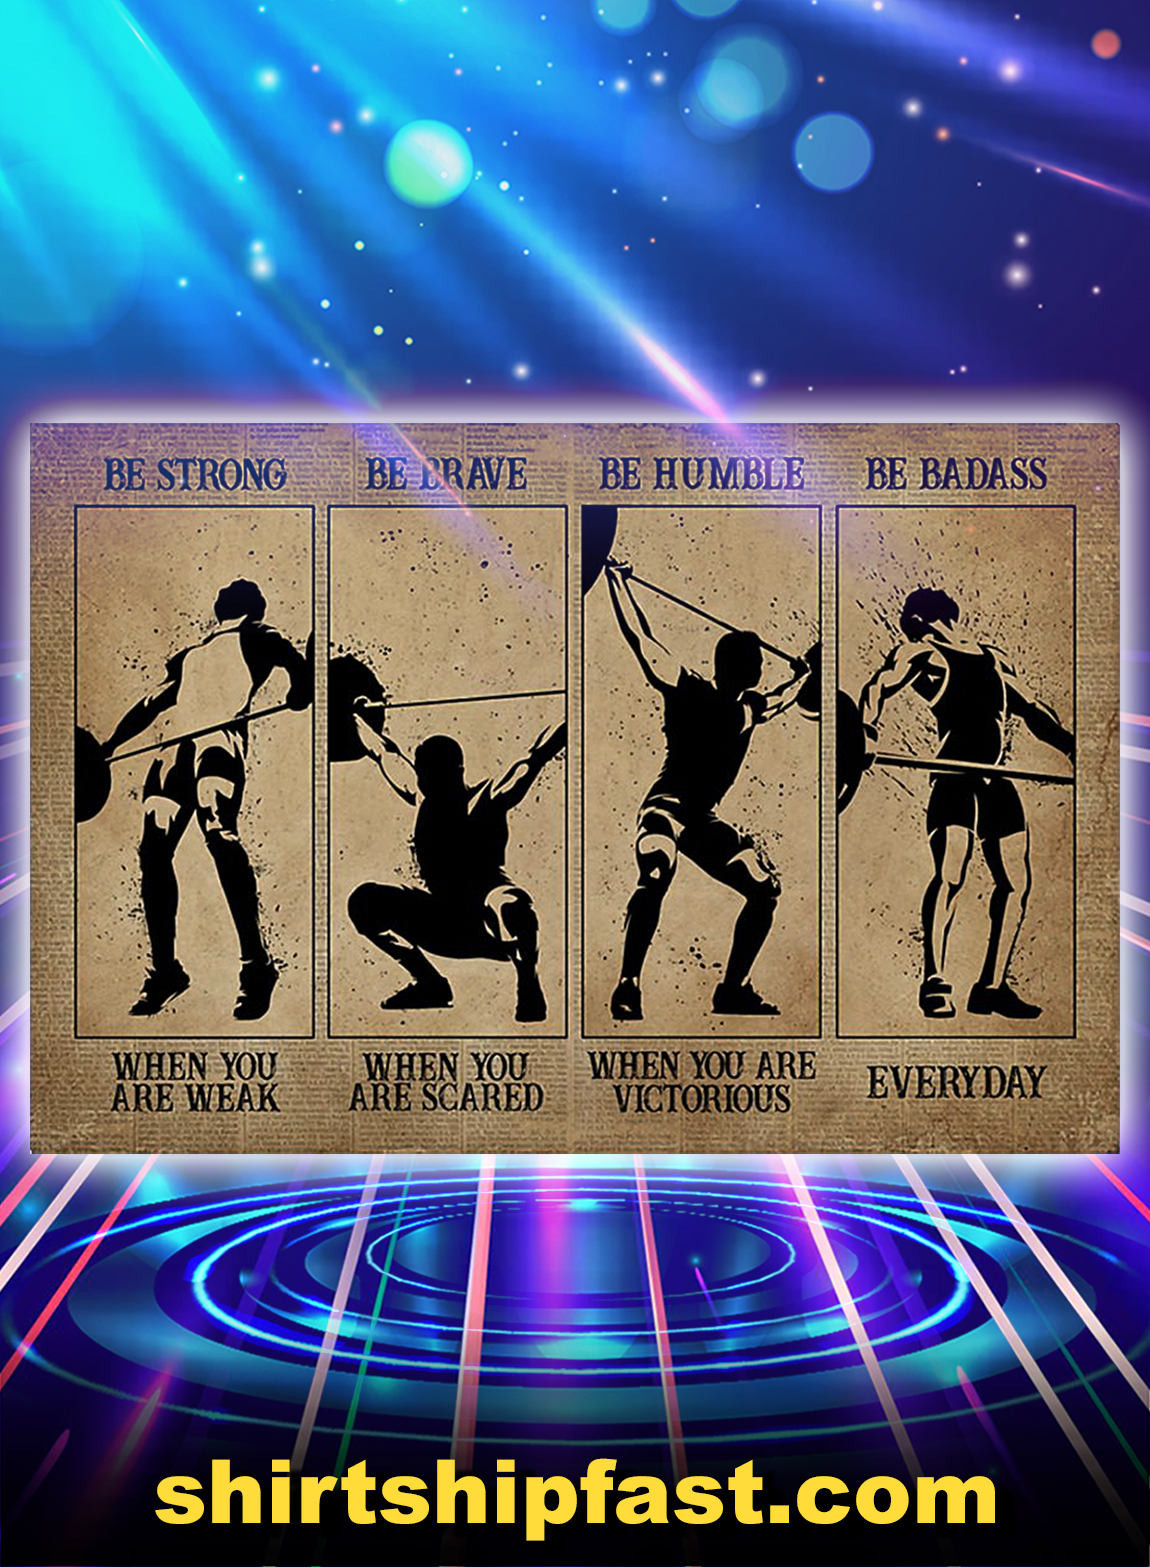 Men weightlifting be strong be brave be humble be badass poster - A3